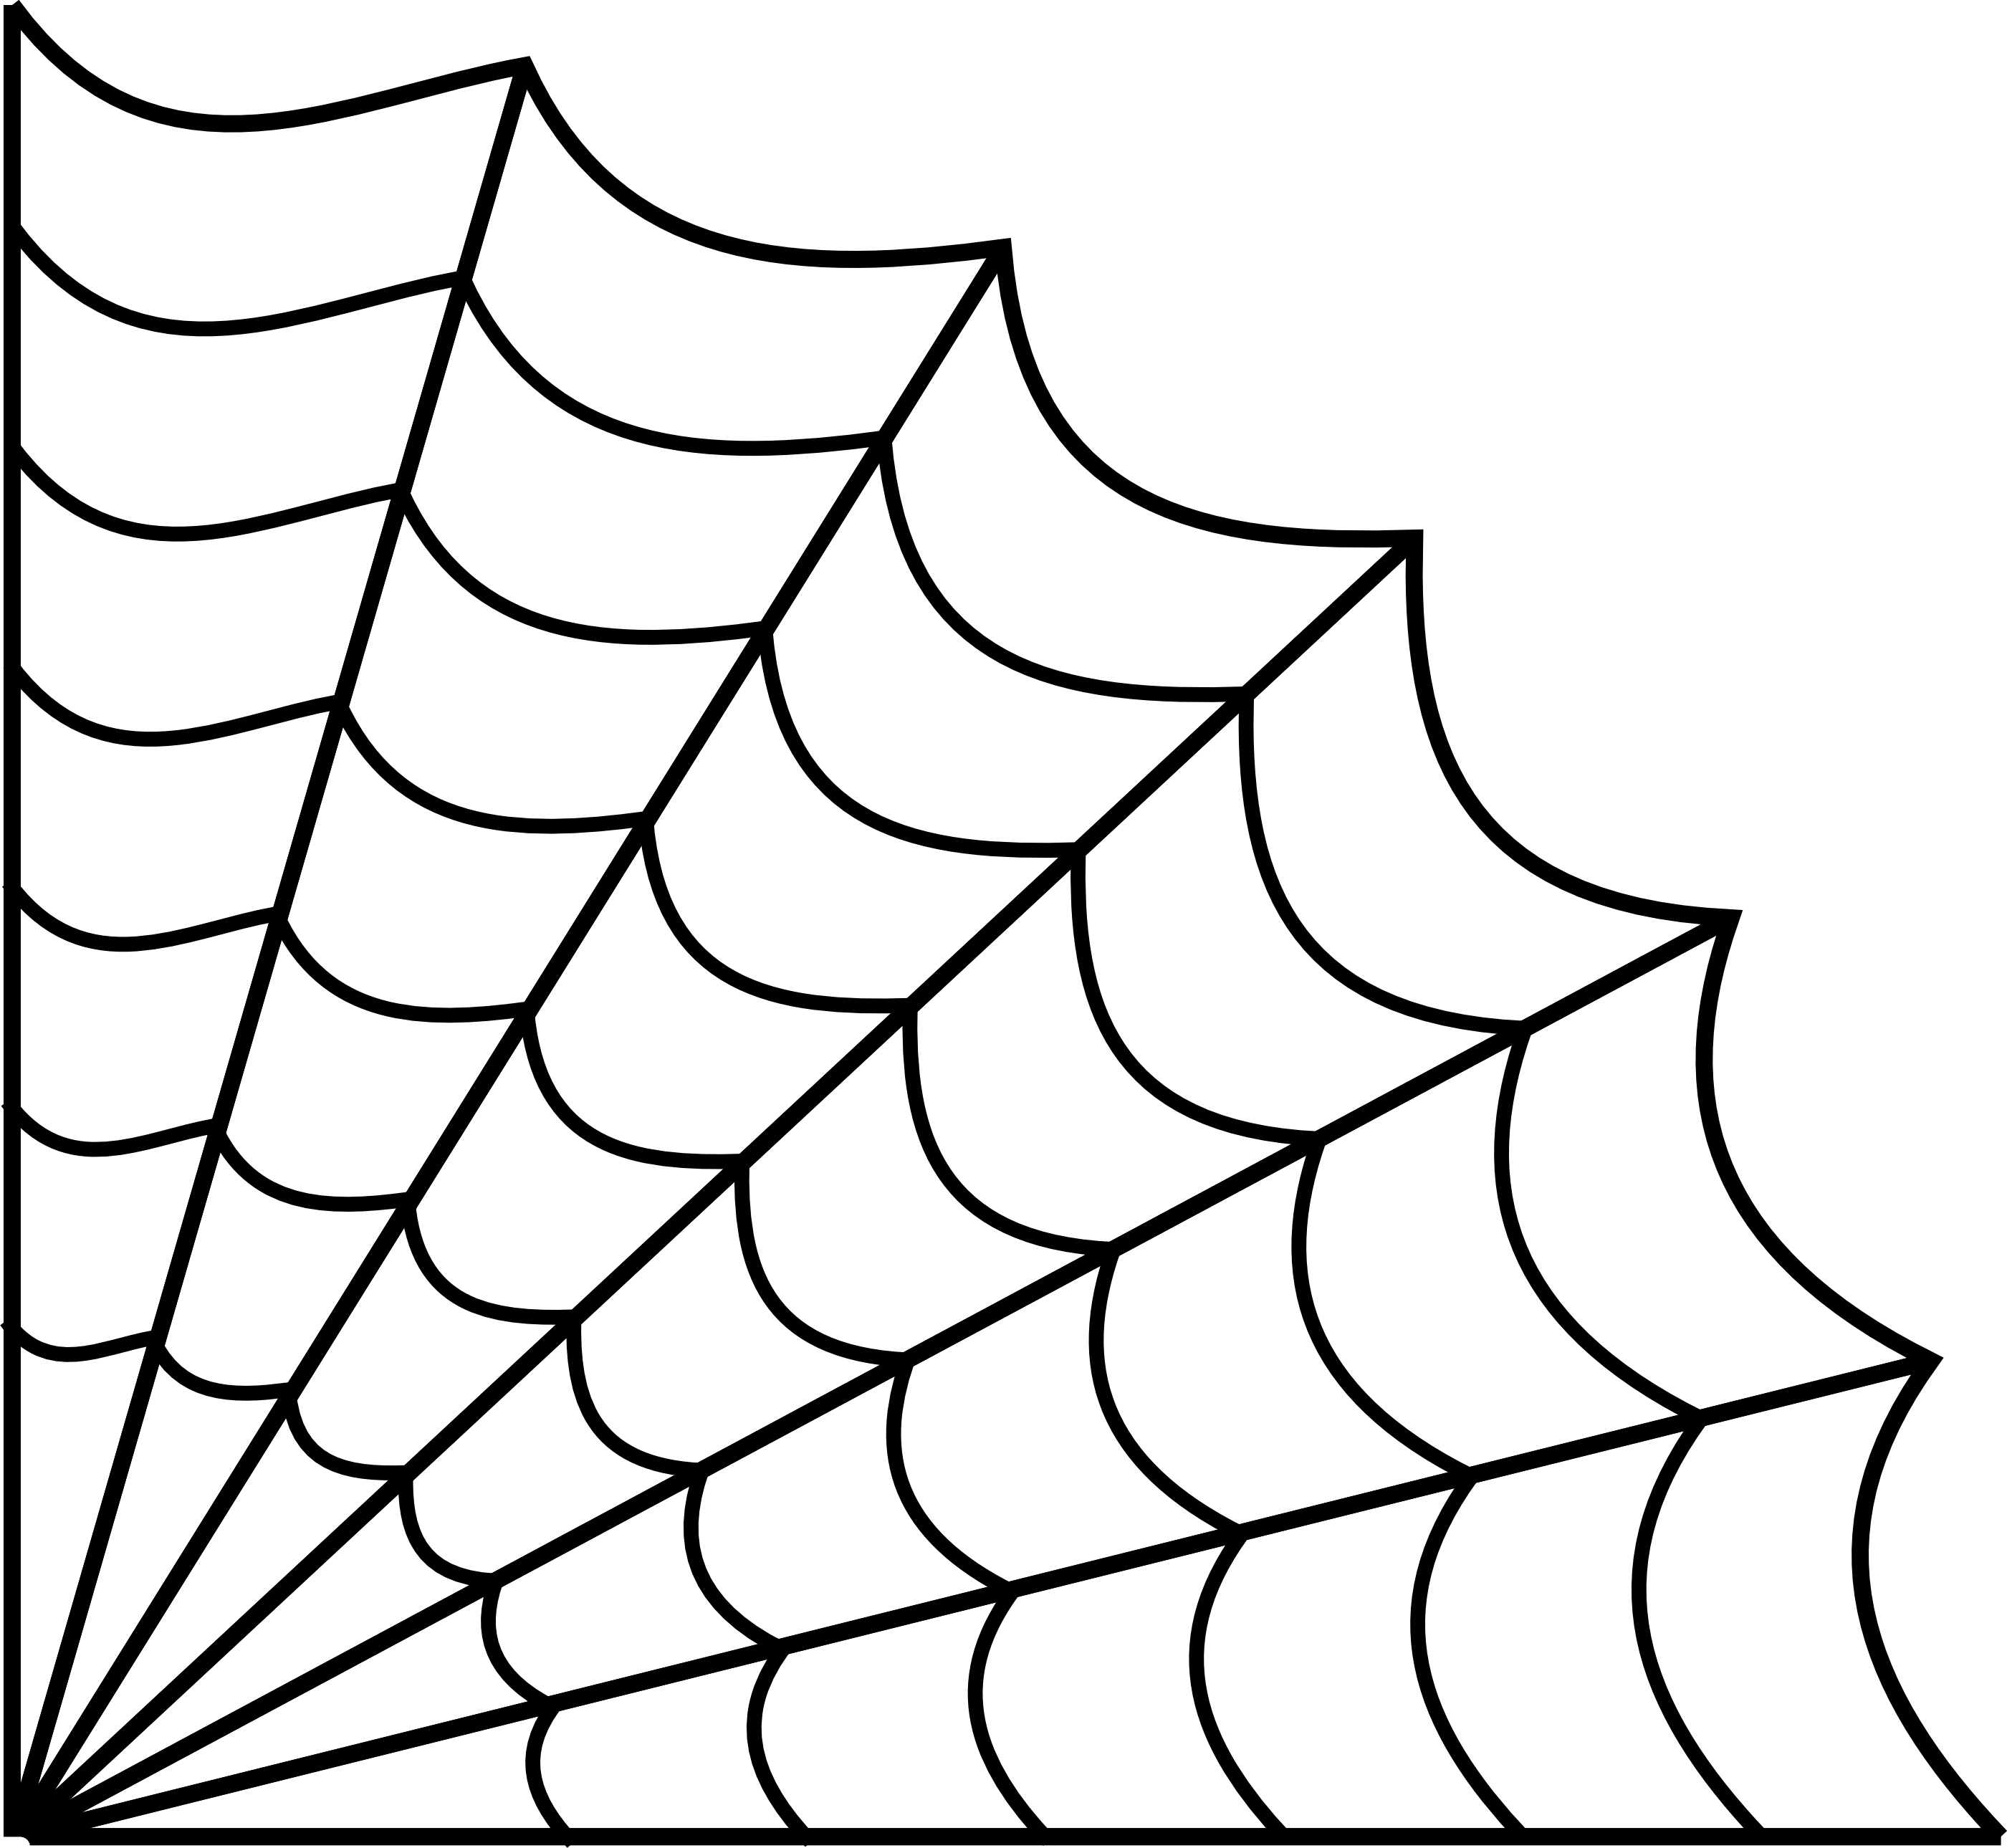 vector transparent download Drawing at getdrawings com. Spider on web clipart